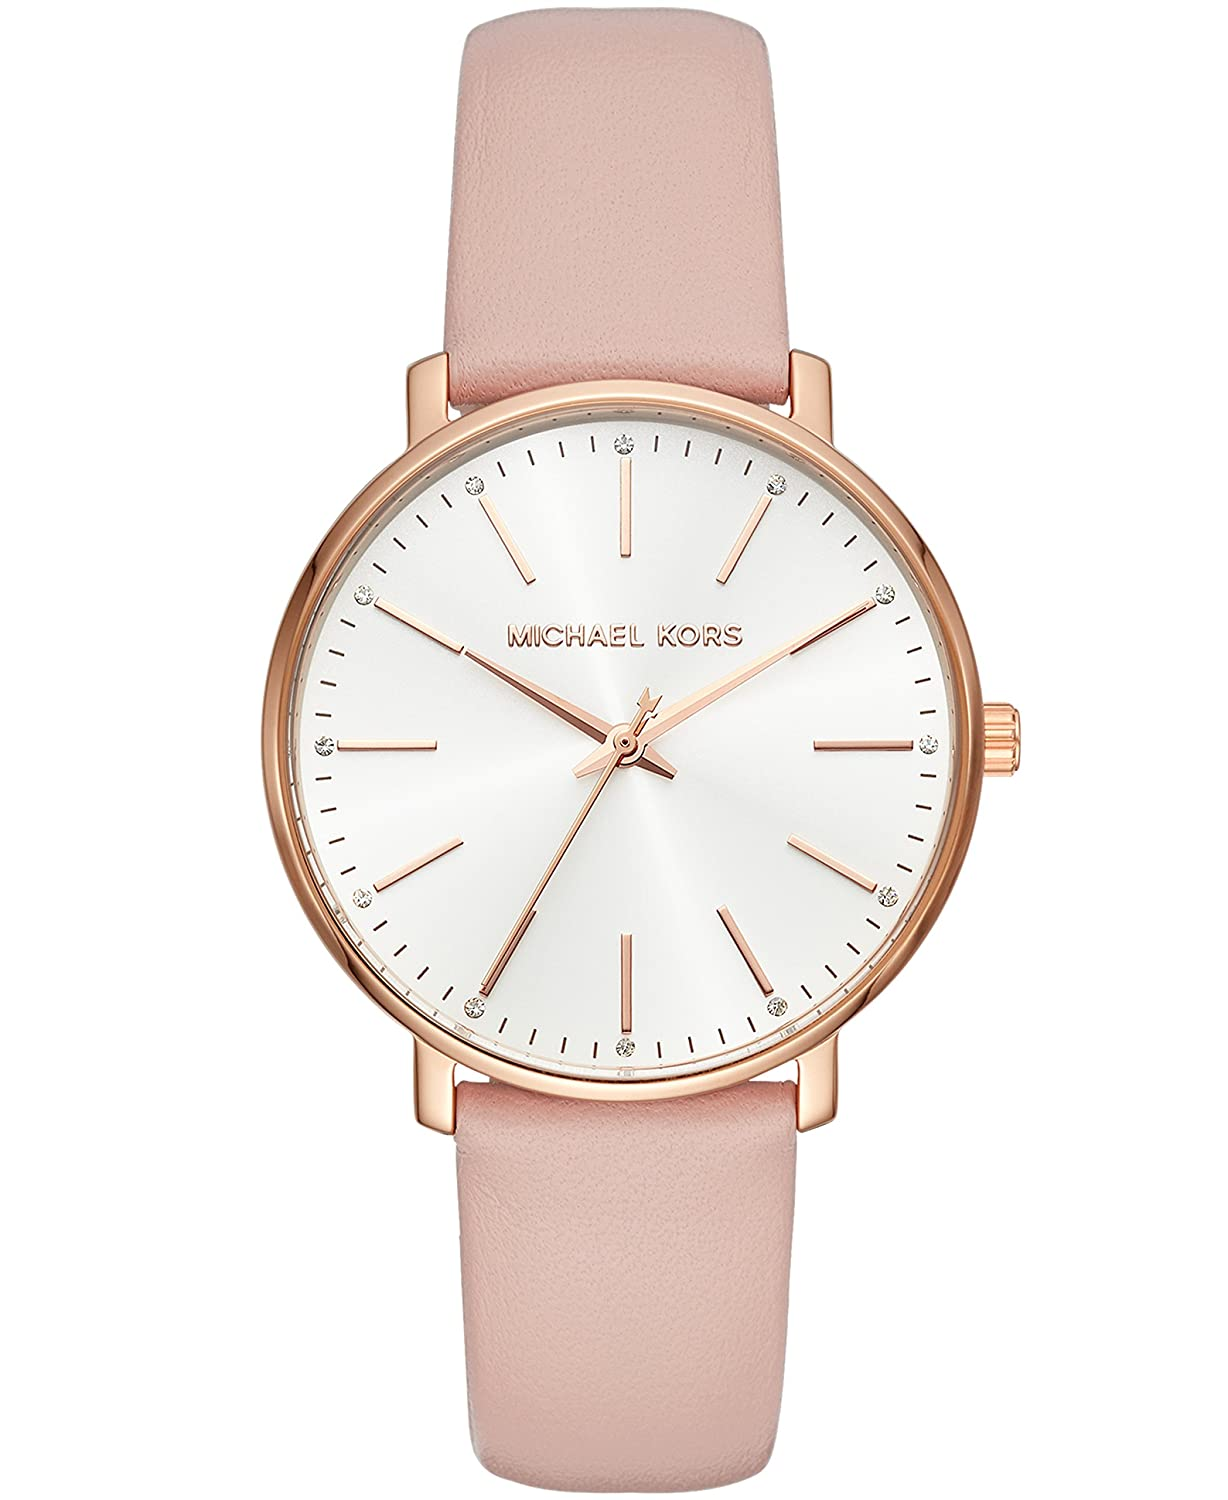 67058a64b350 Amazon.com  Michael Kors Women s Stainless Steel Quartz Watch with Leather  Calfskin Strap